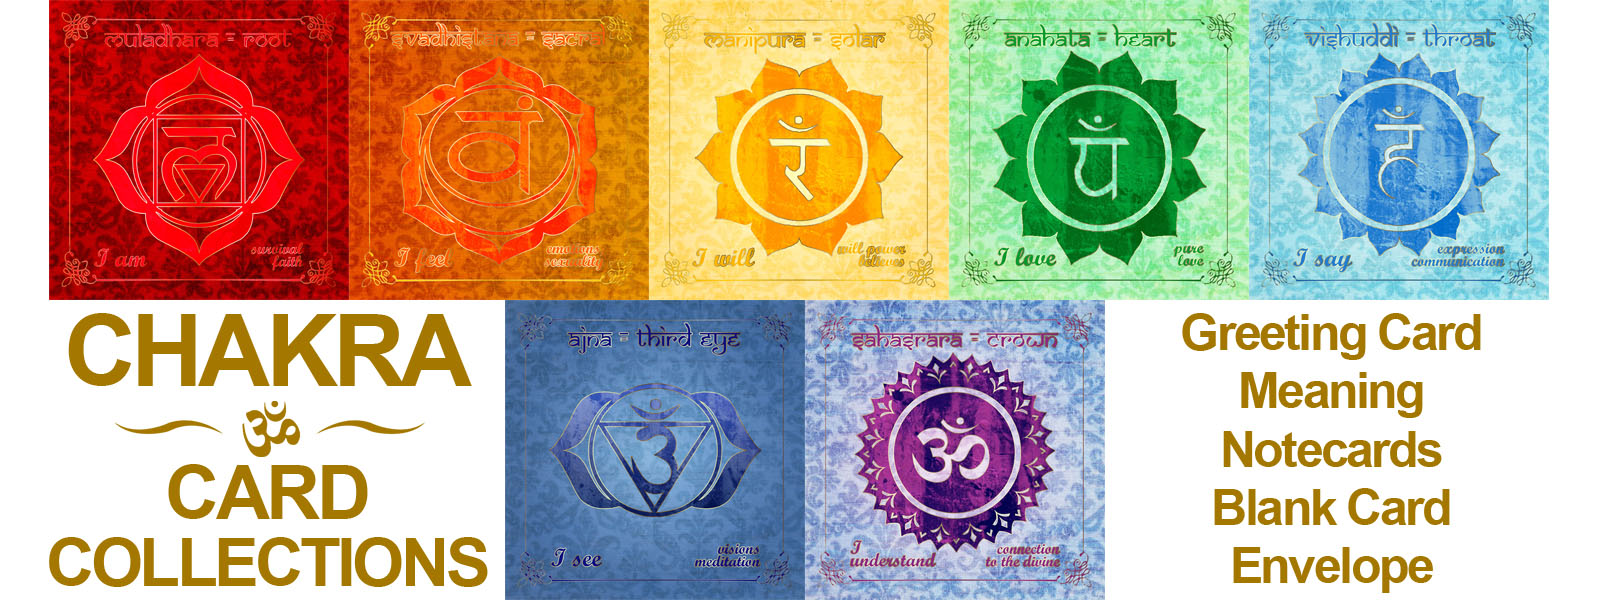 Printable Digital Sheets - Square Card Collections - Chakra Cards, Complete Collection,